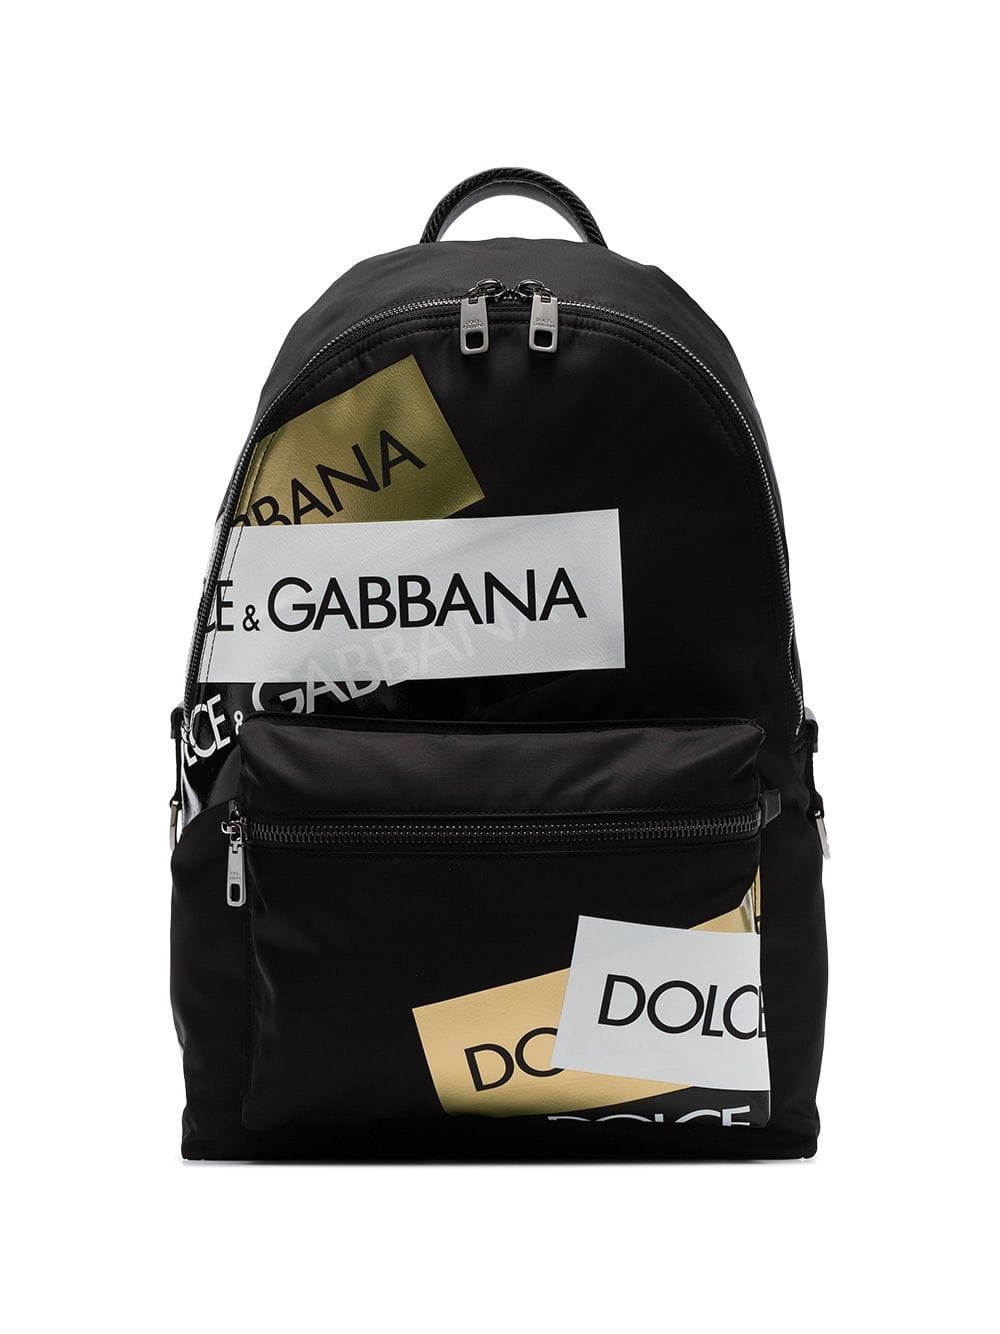 ed6c2974 dolce & gabbana LOGO BACKPACK available on montiboutique.com - 27601